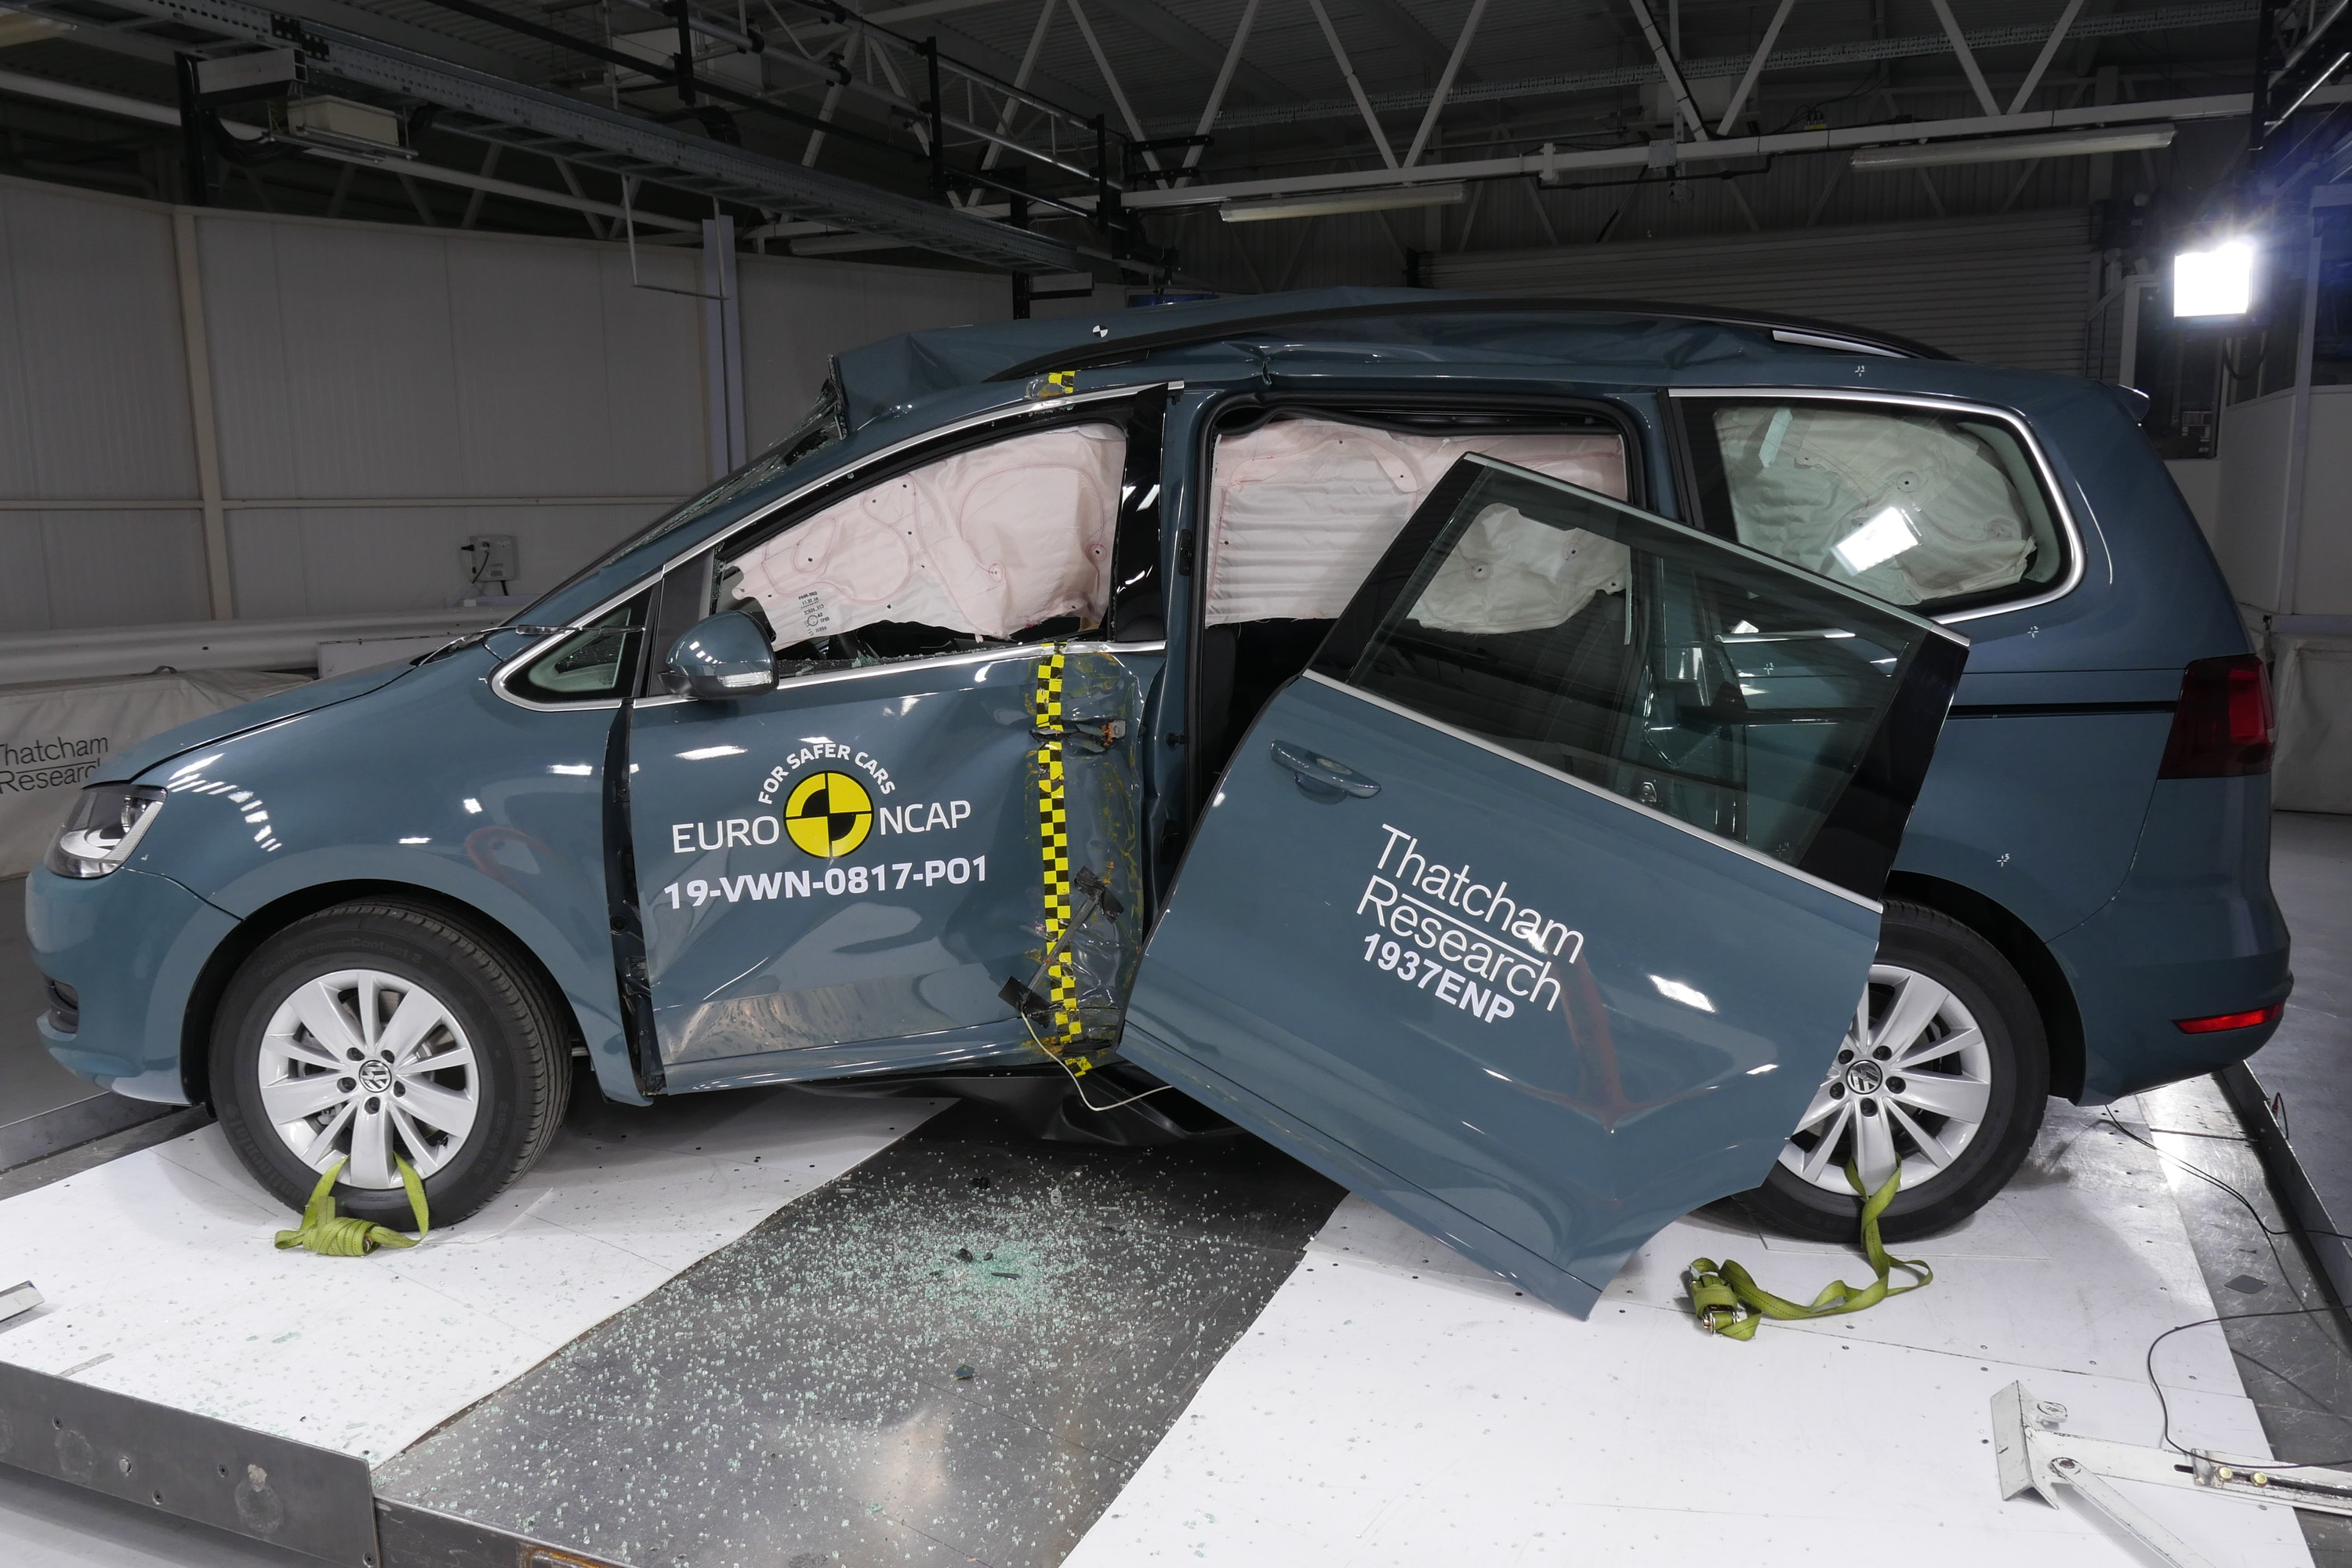 Volkswagen Sharan at NCAP training